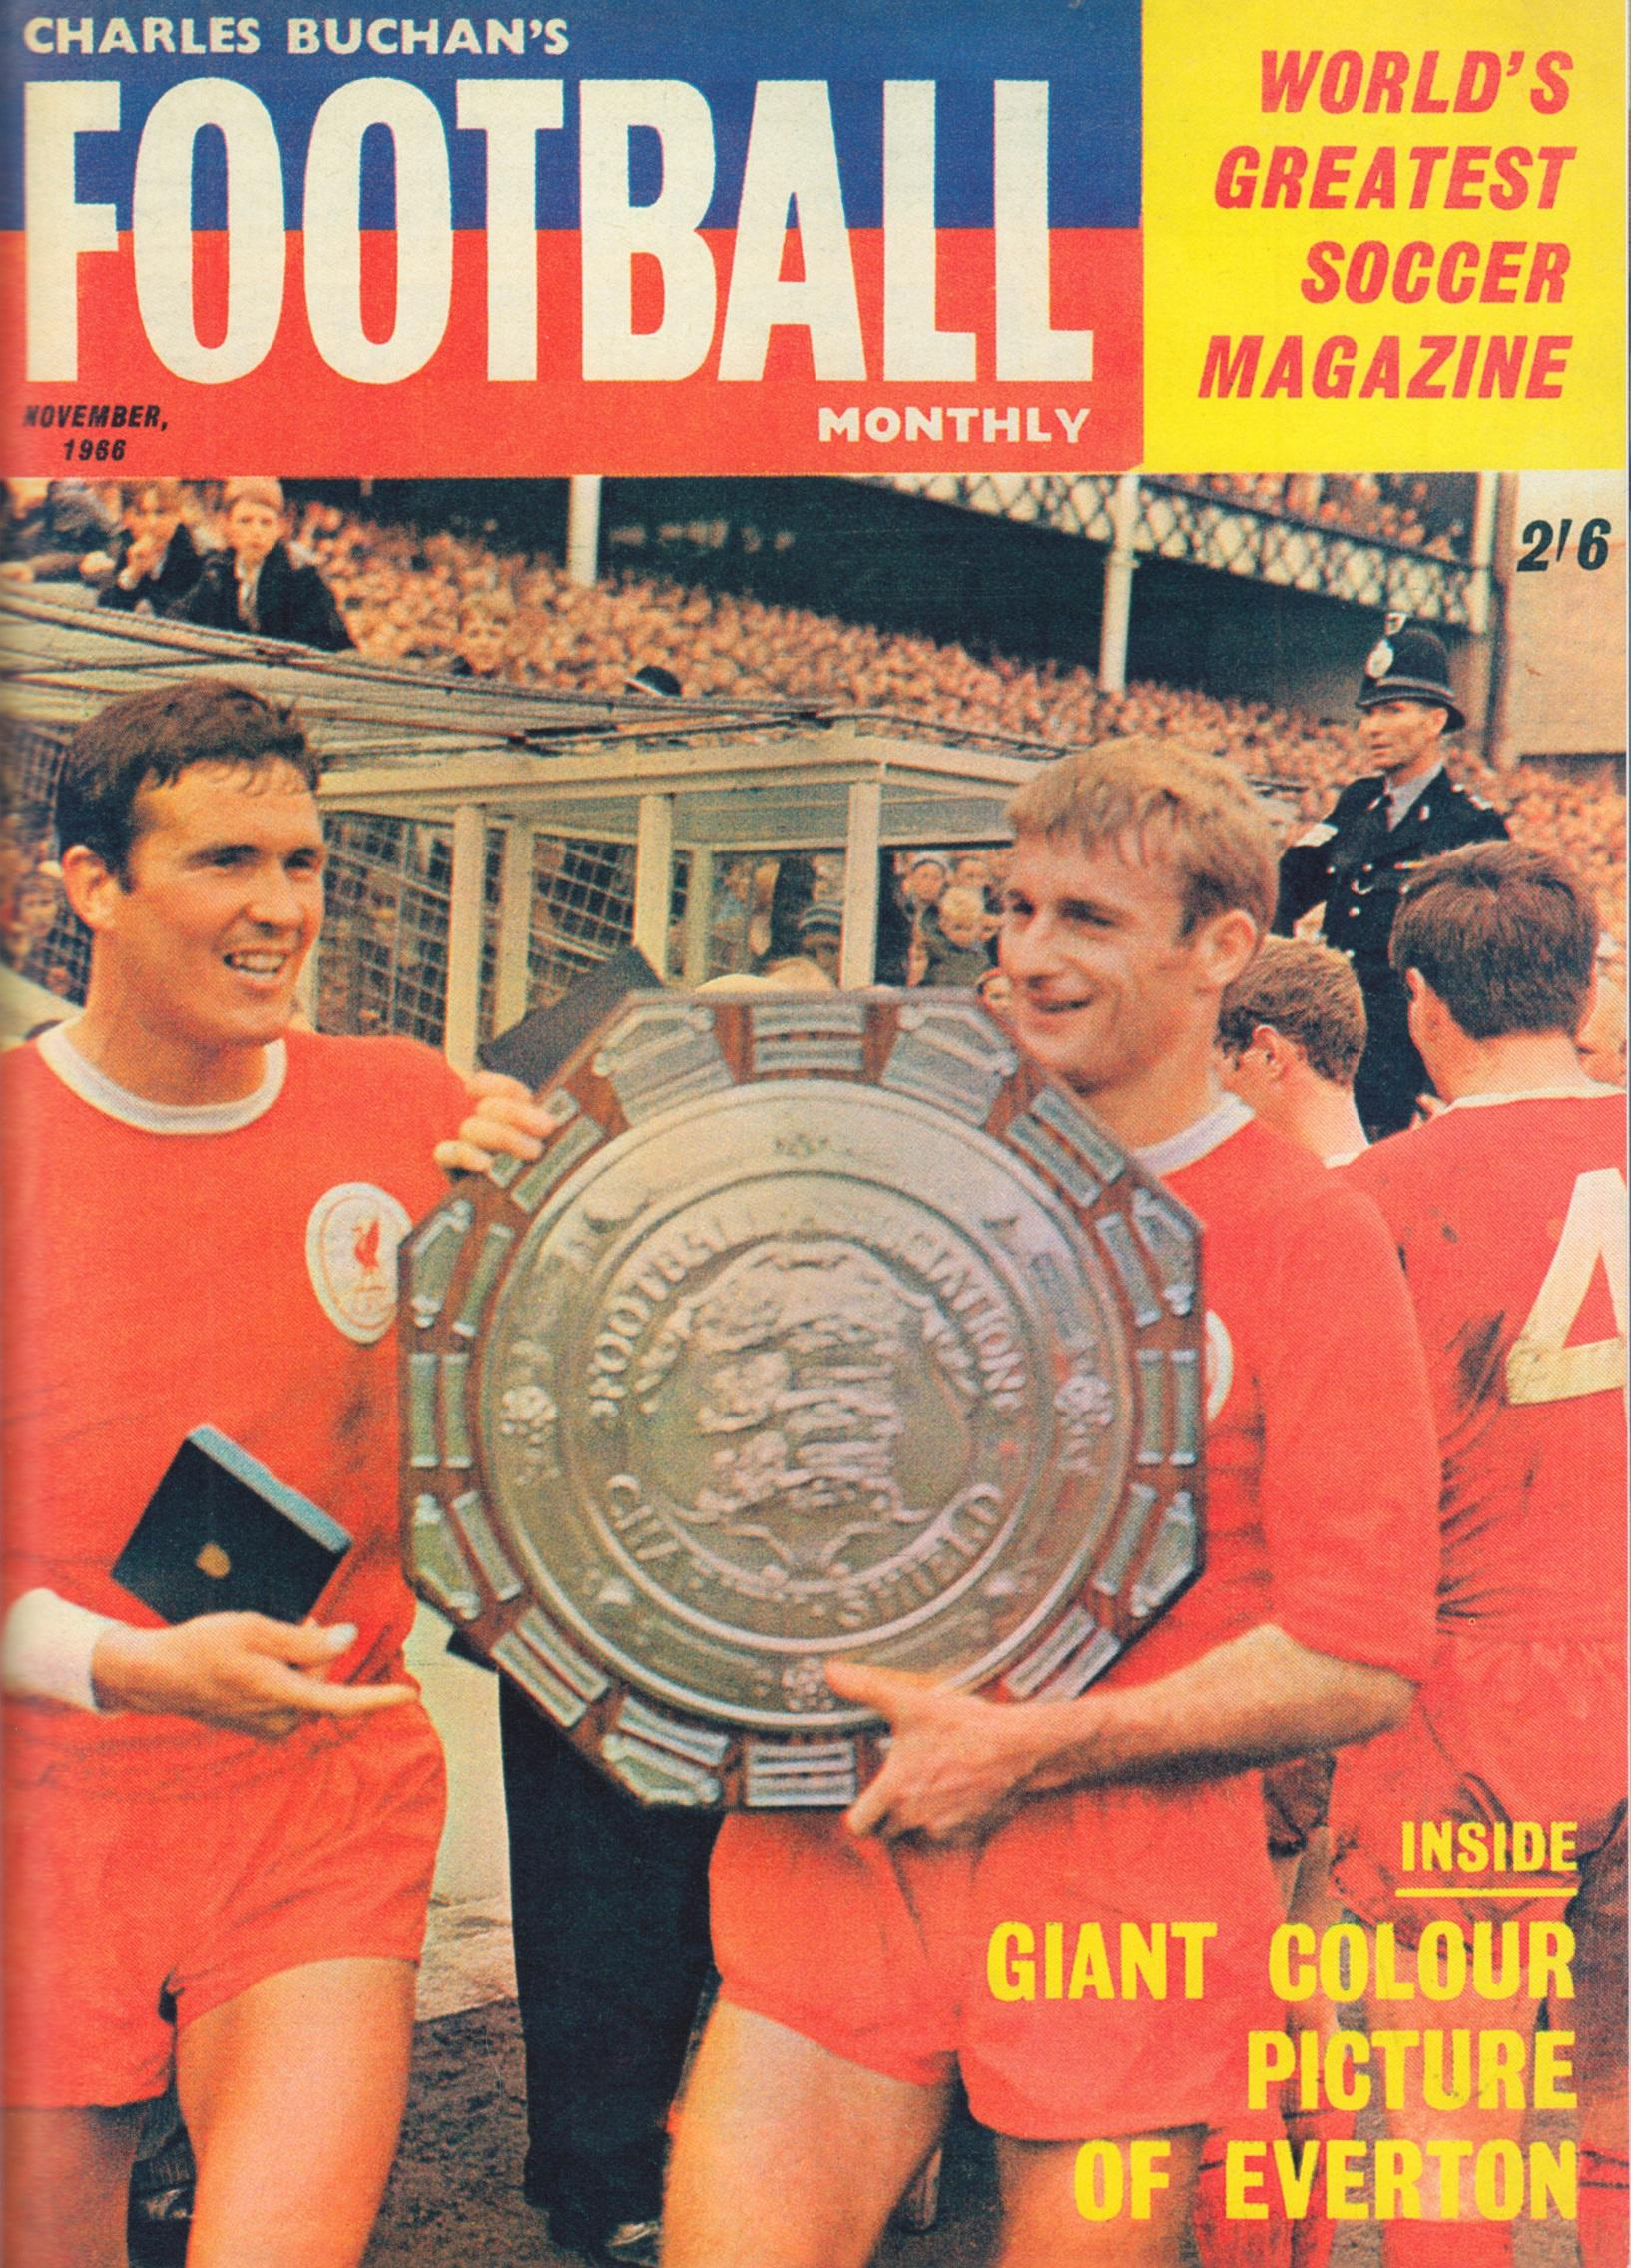 Ron Yeats and Roger Hunt on the cover of Football Monthly November 1966